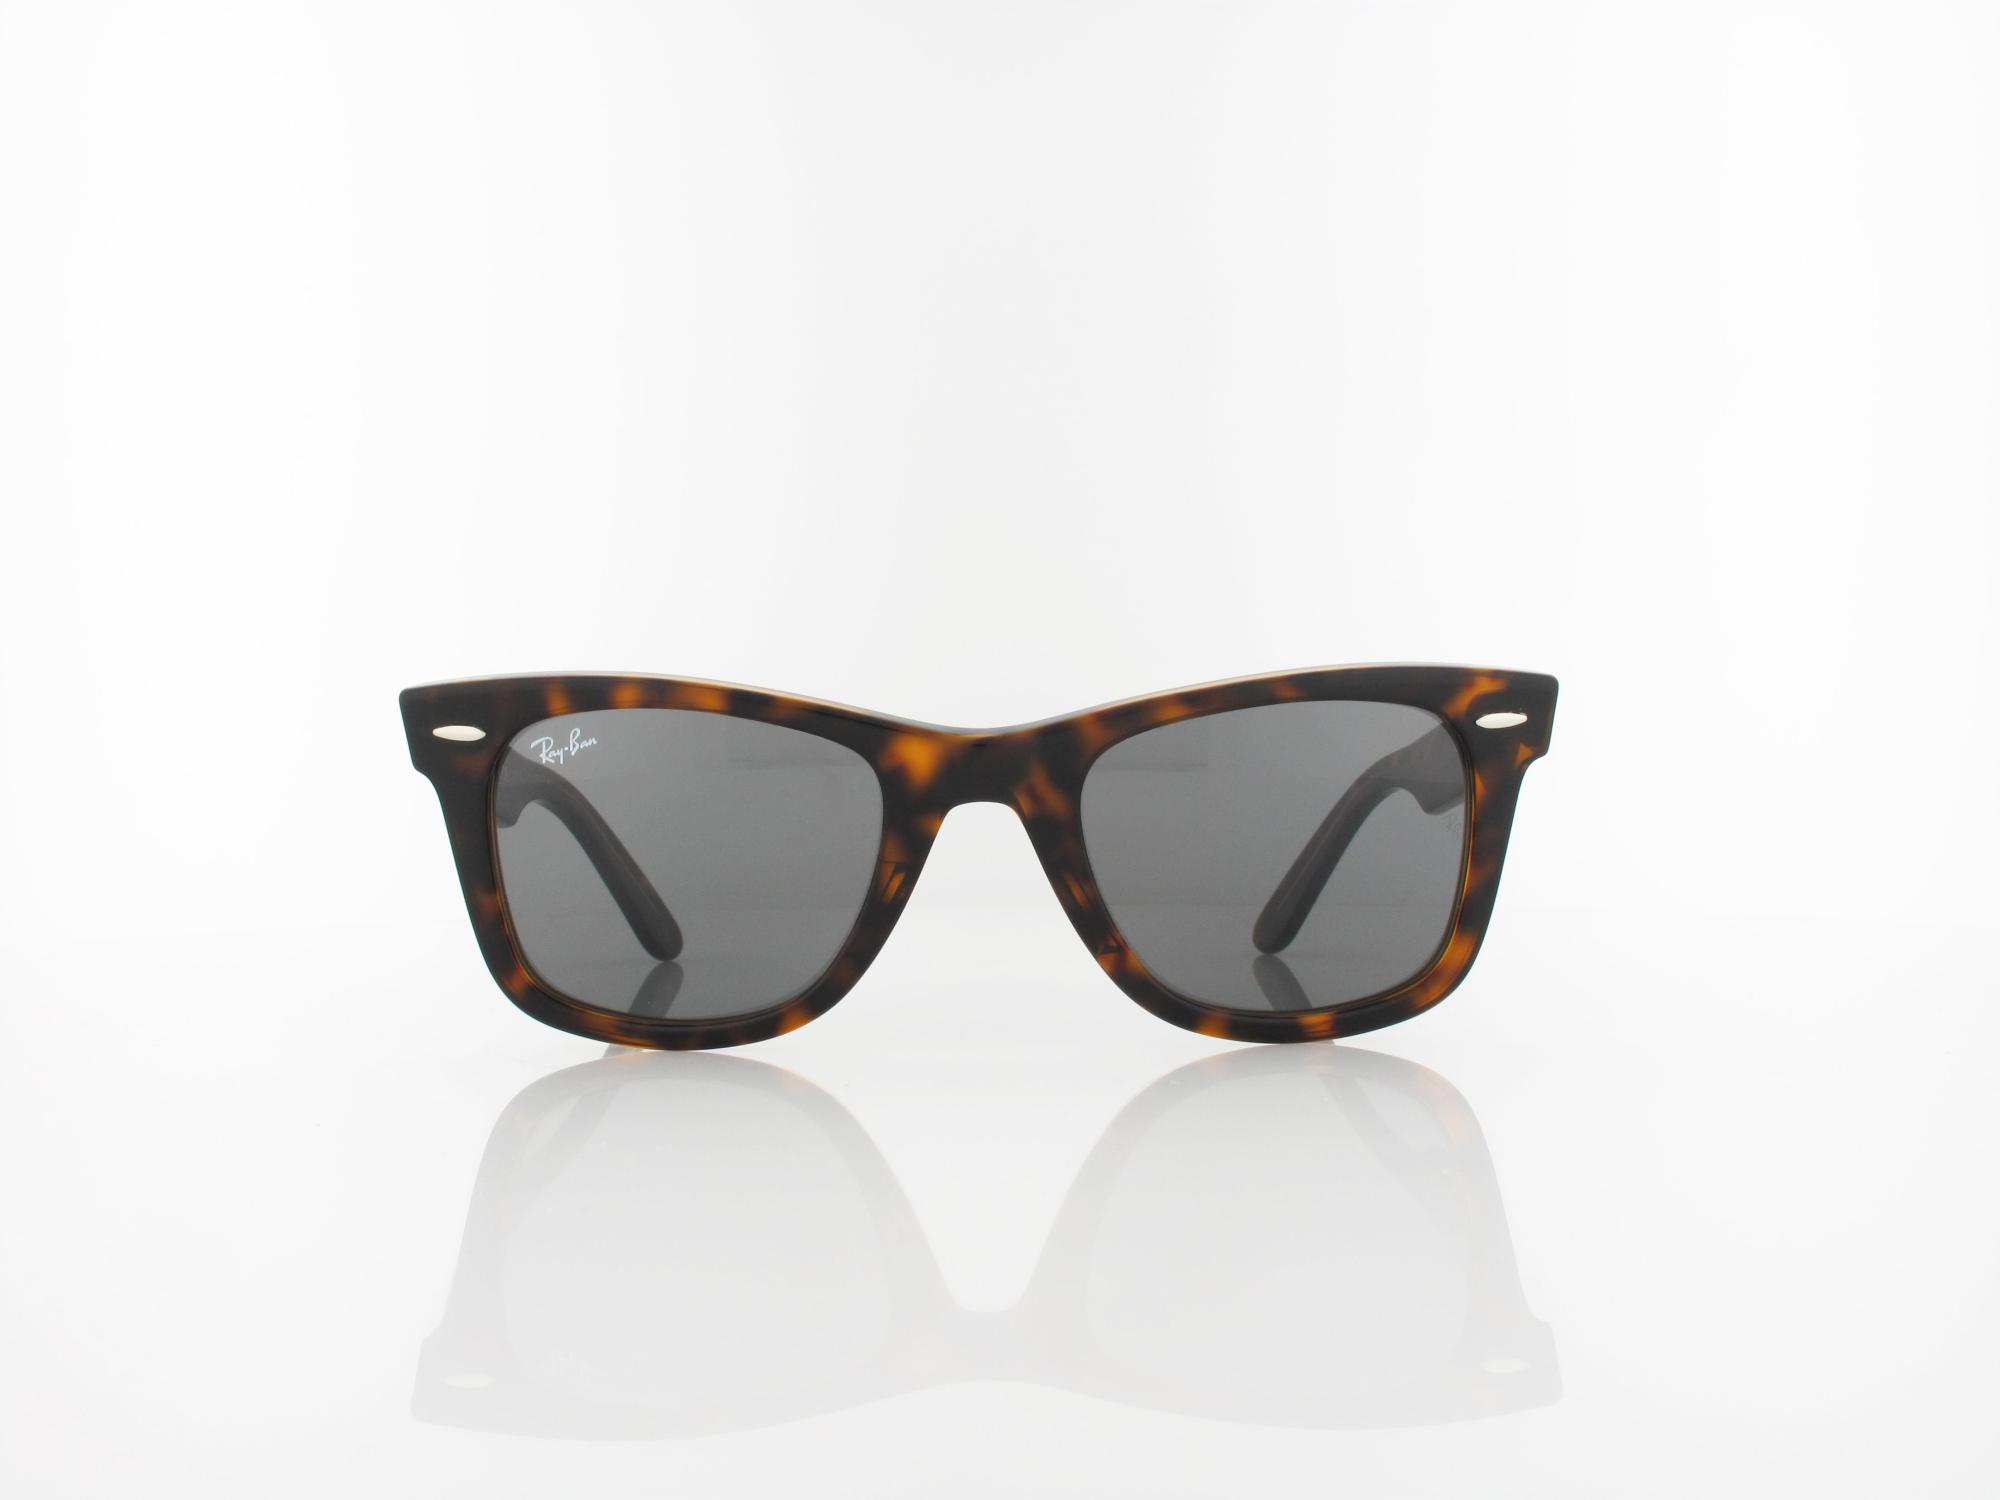 Ray Ban | RB2140 1292B1 50 | havana on trasparent light bro / dark grey